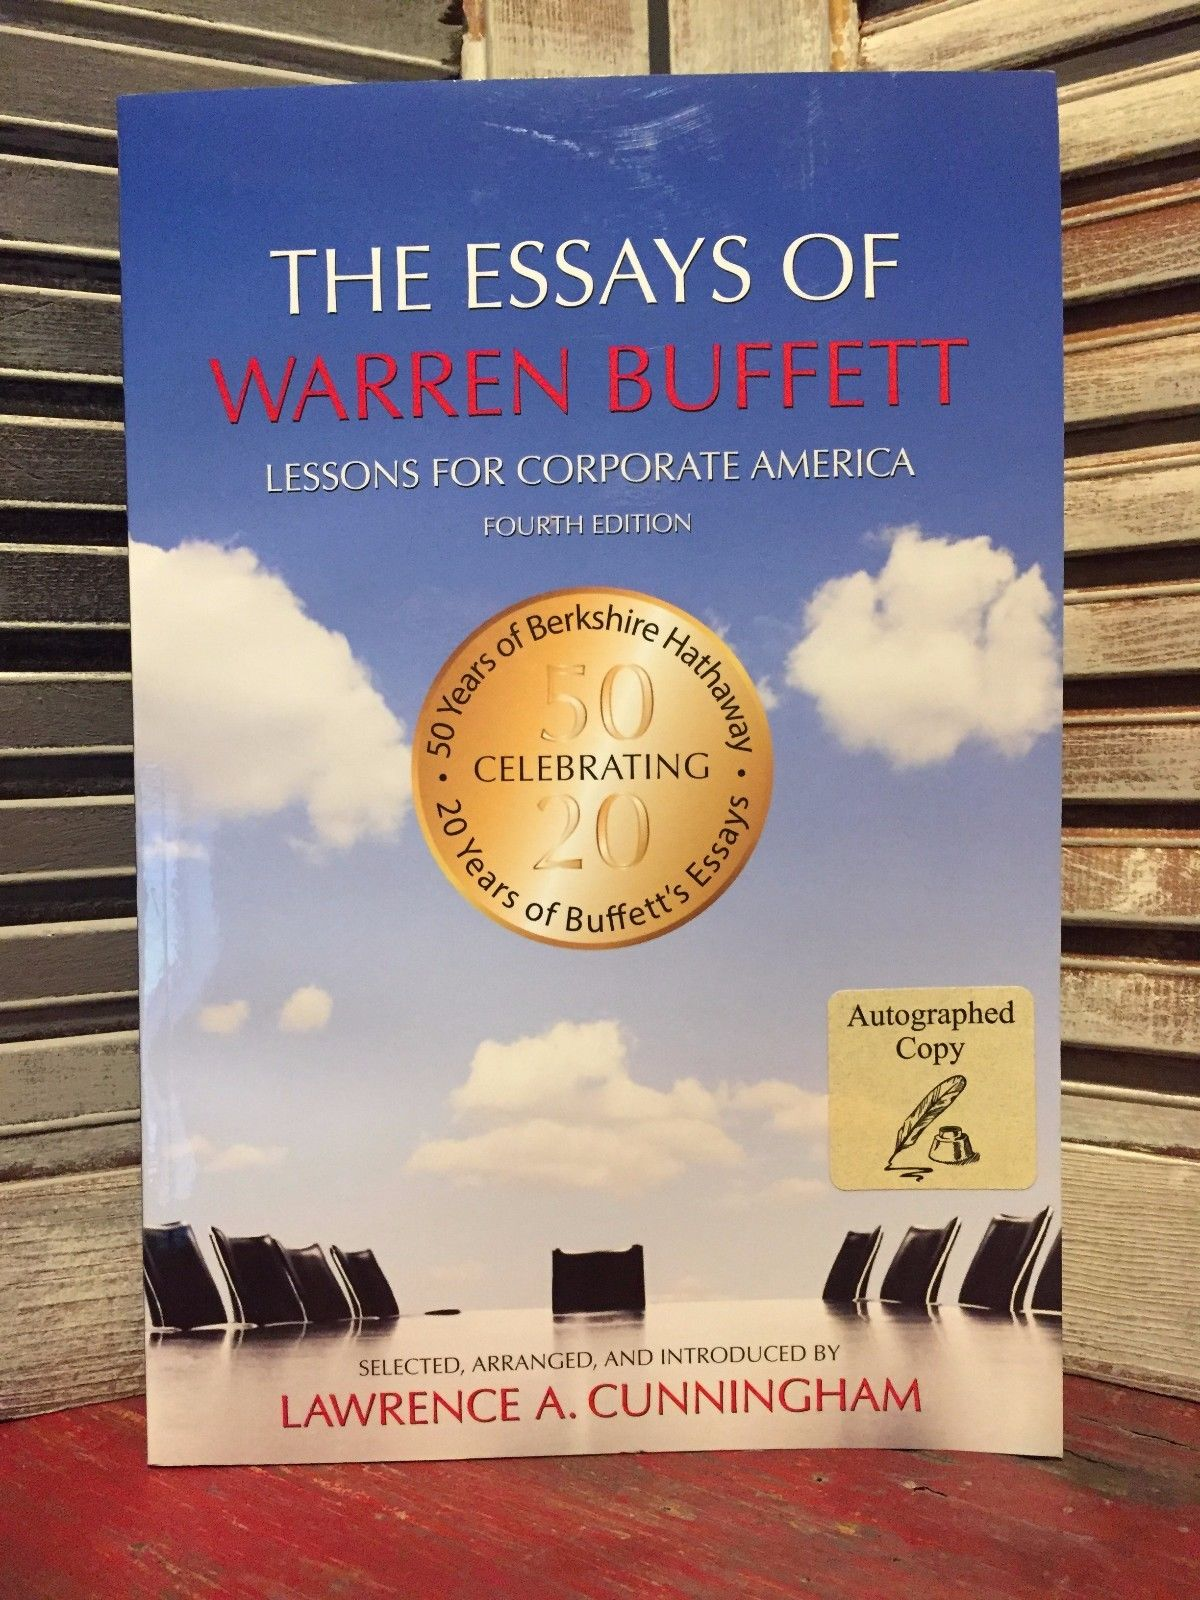 009 The Essays Of Warren Buffett Lessons For Corporate America Essay Example S Remarkable Third Edition 3rd Second Pdf Audio Book Full